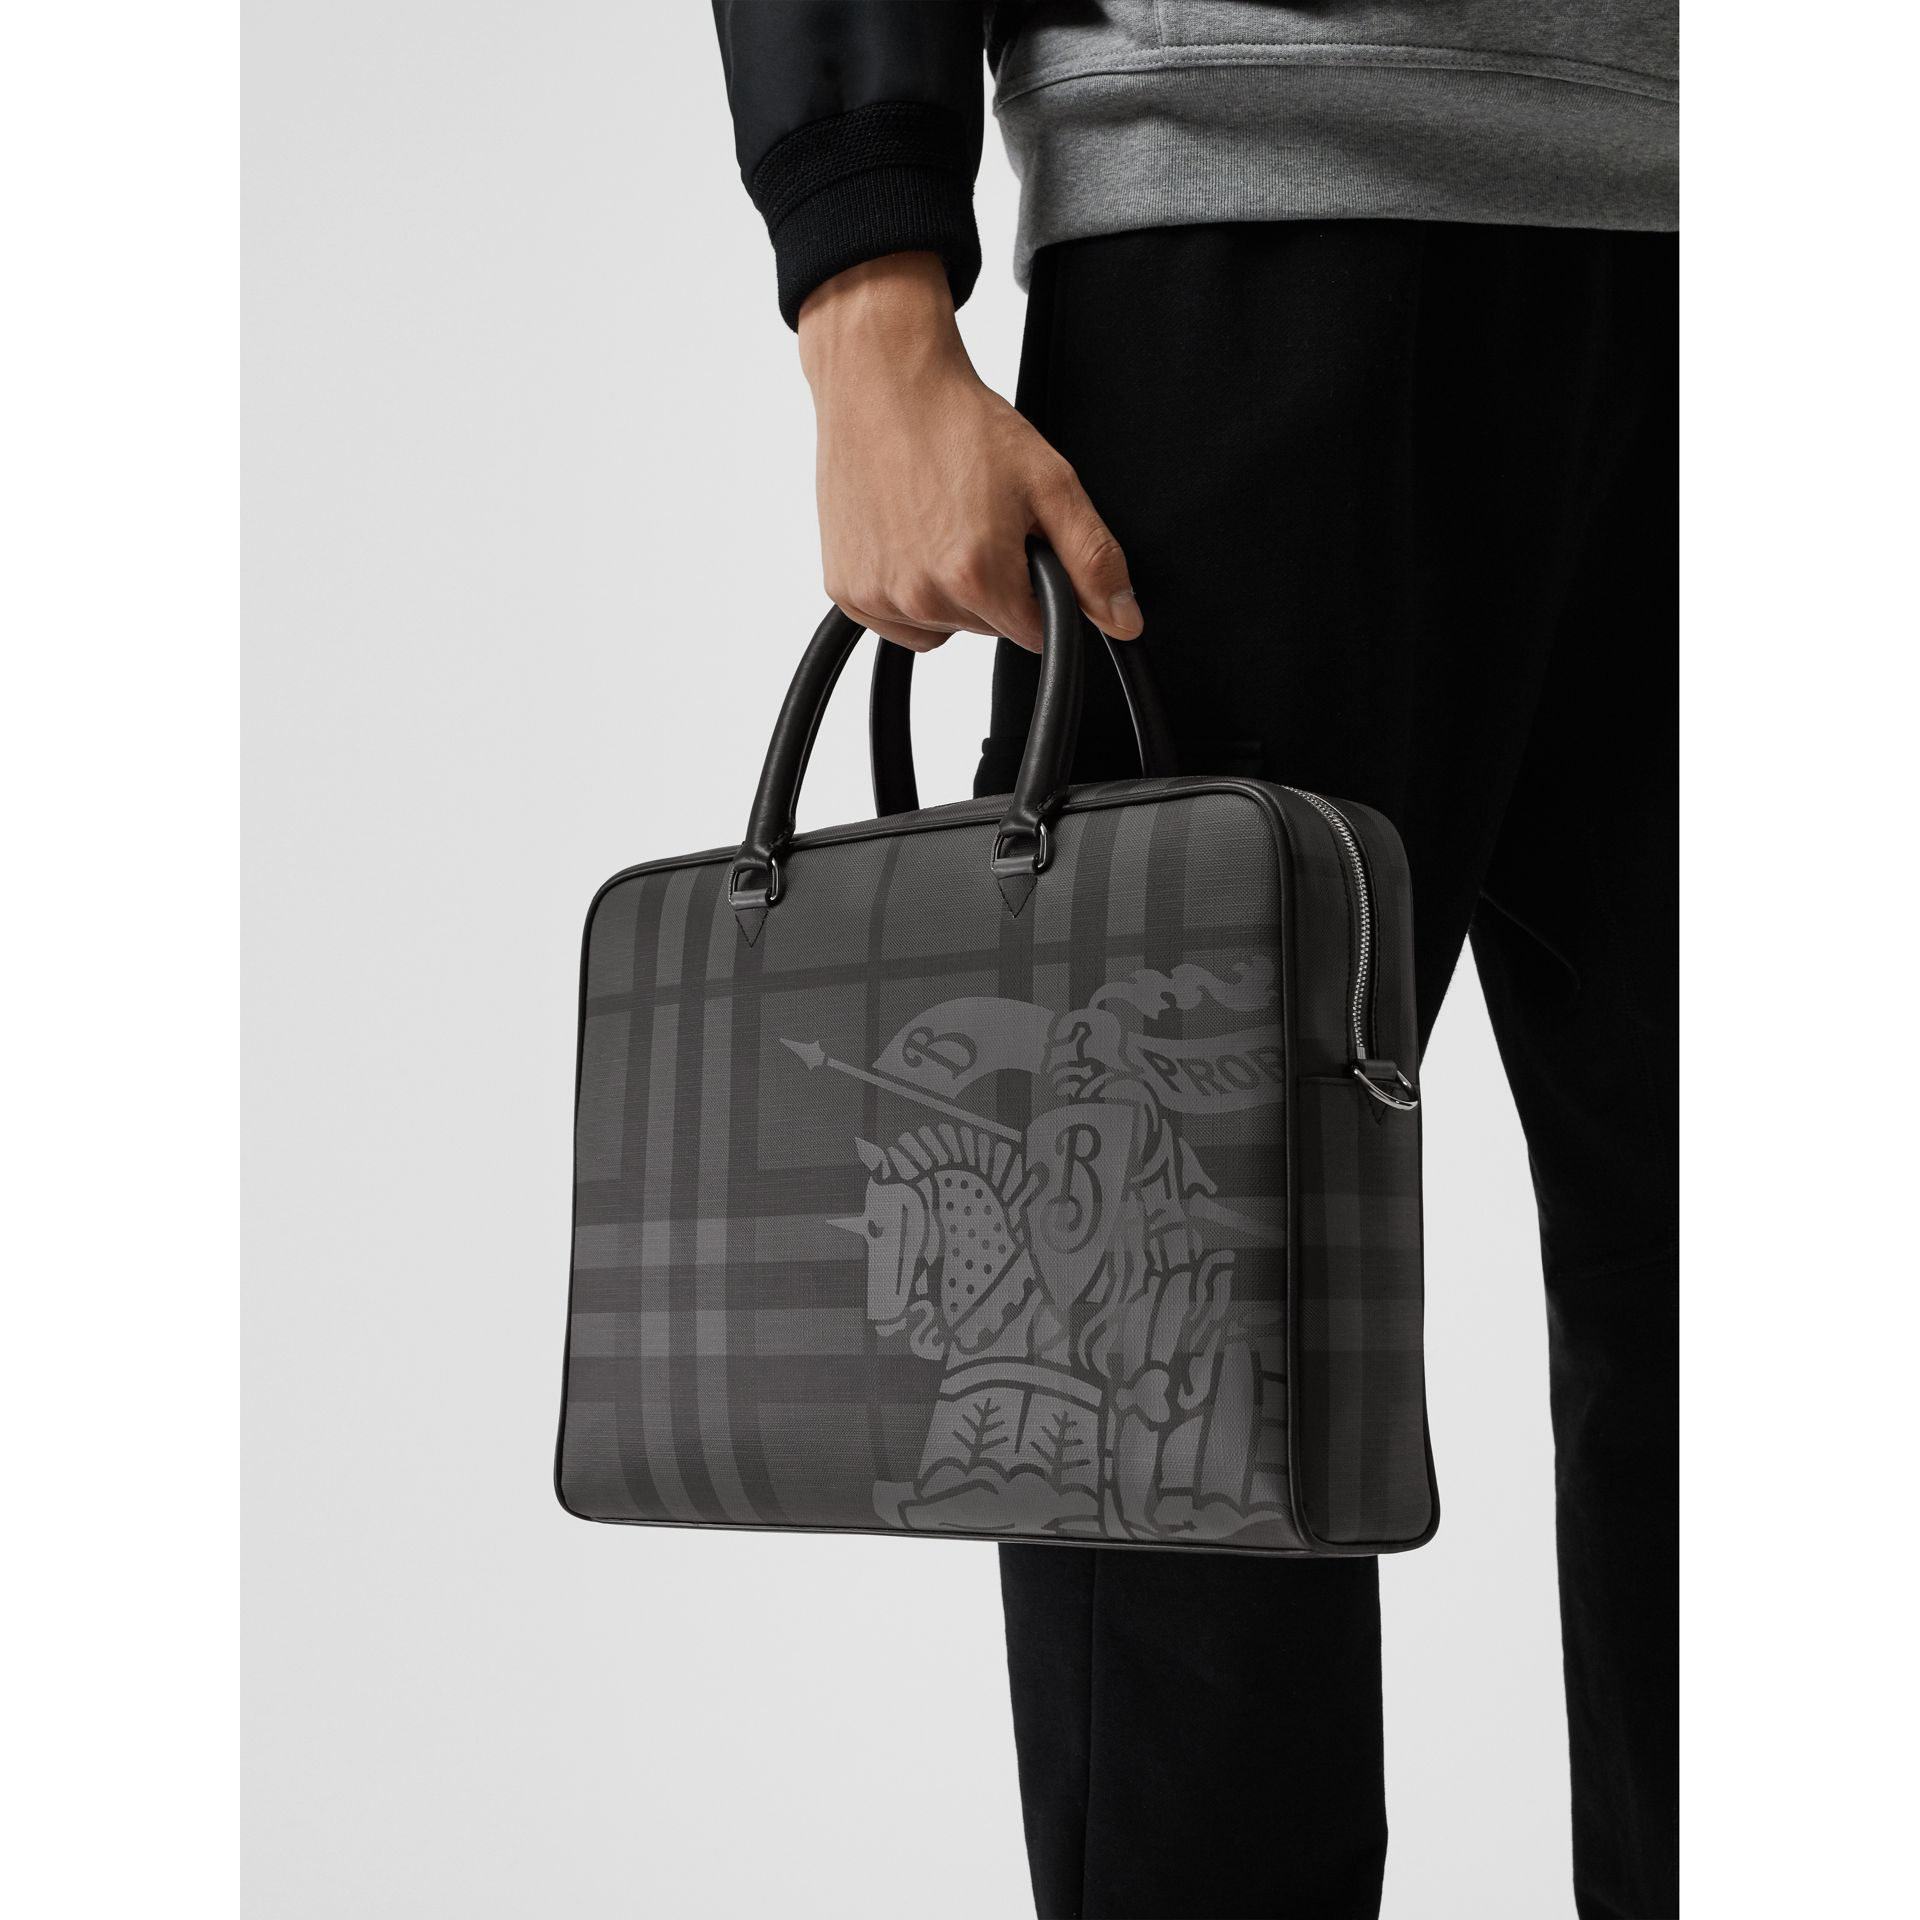 EKD London Check and Leather Briefcase in Charcoal/black - Men | Burberry United Kingdom - gallery image 3